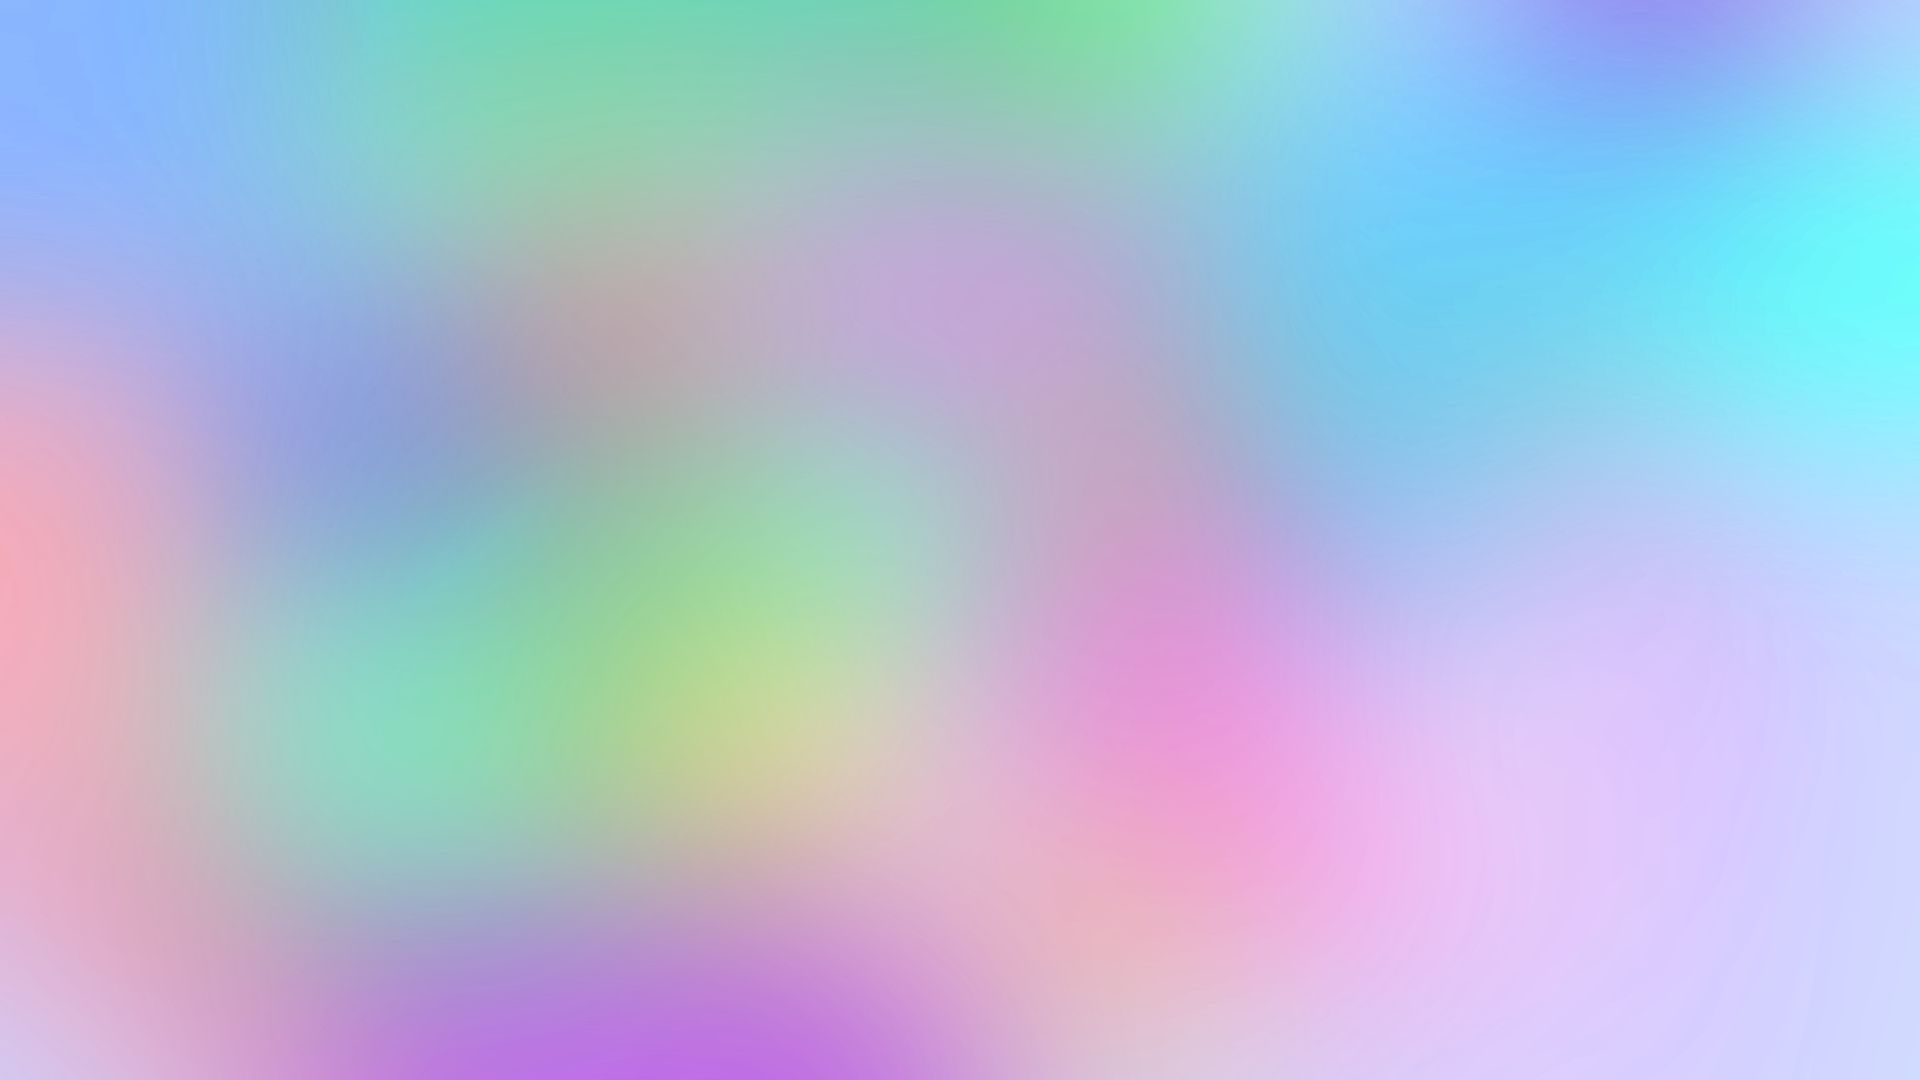 New Wallpaper Color Iphone: Free Printable Background Paper